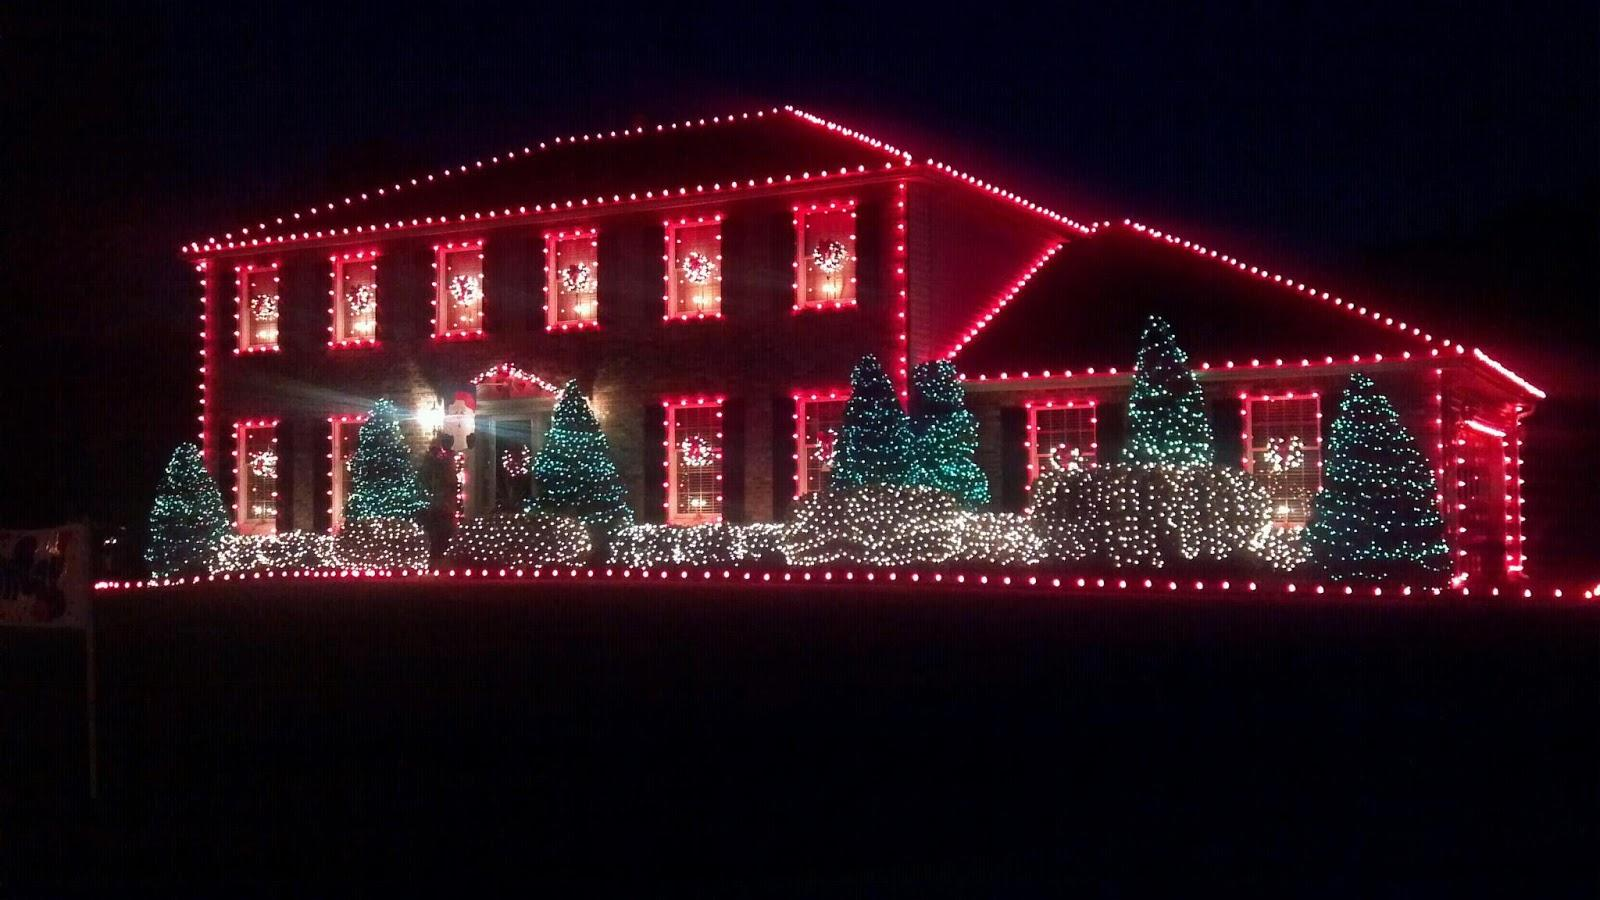 Christmas Light Display Near Me.How Much Will That Light Display Cost This Year Wjct News